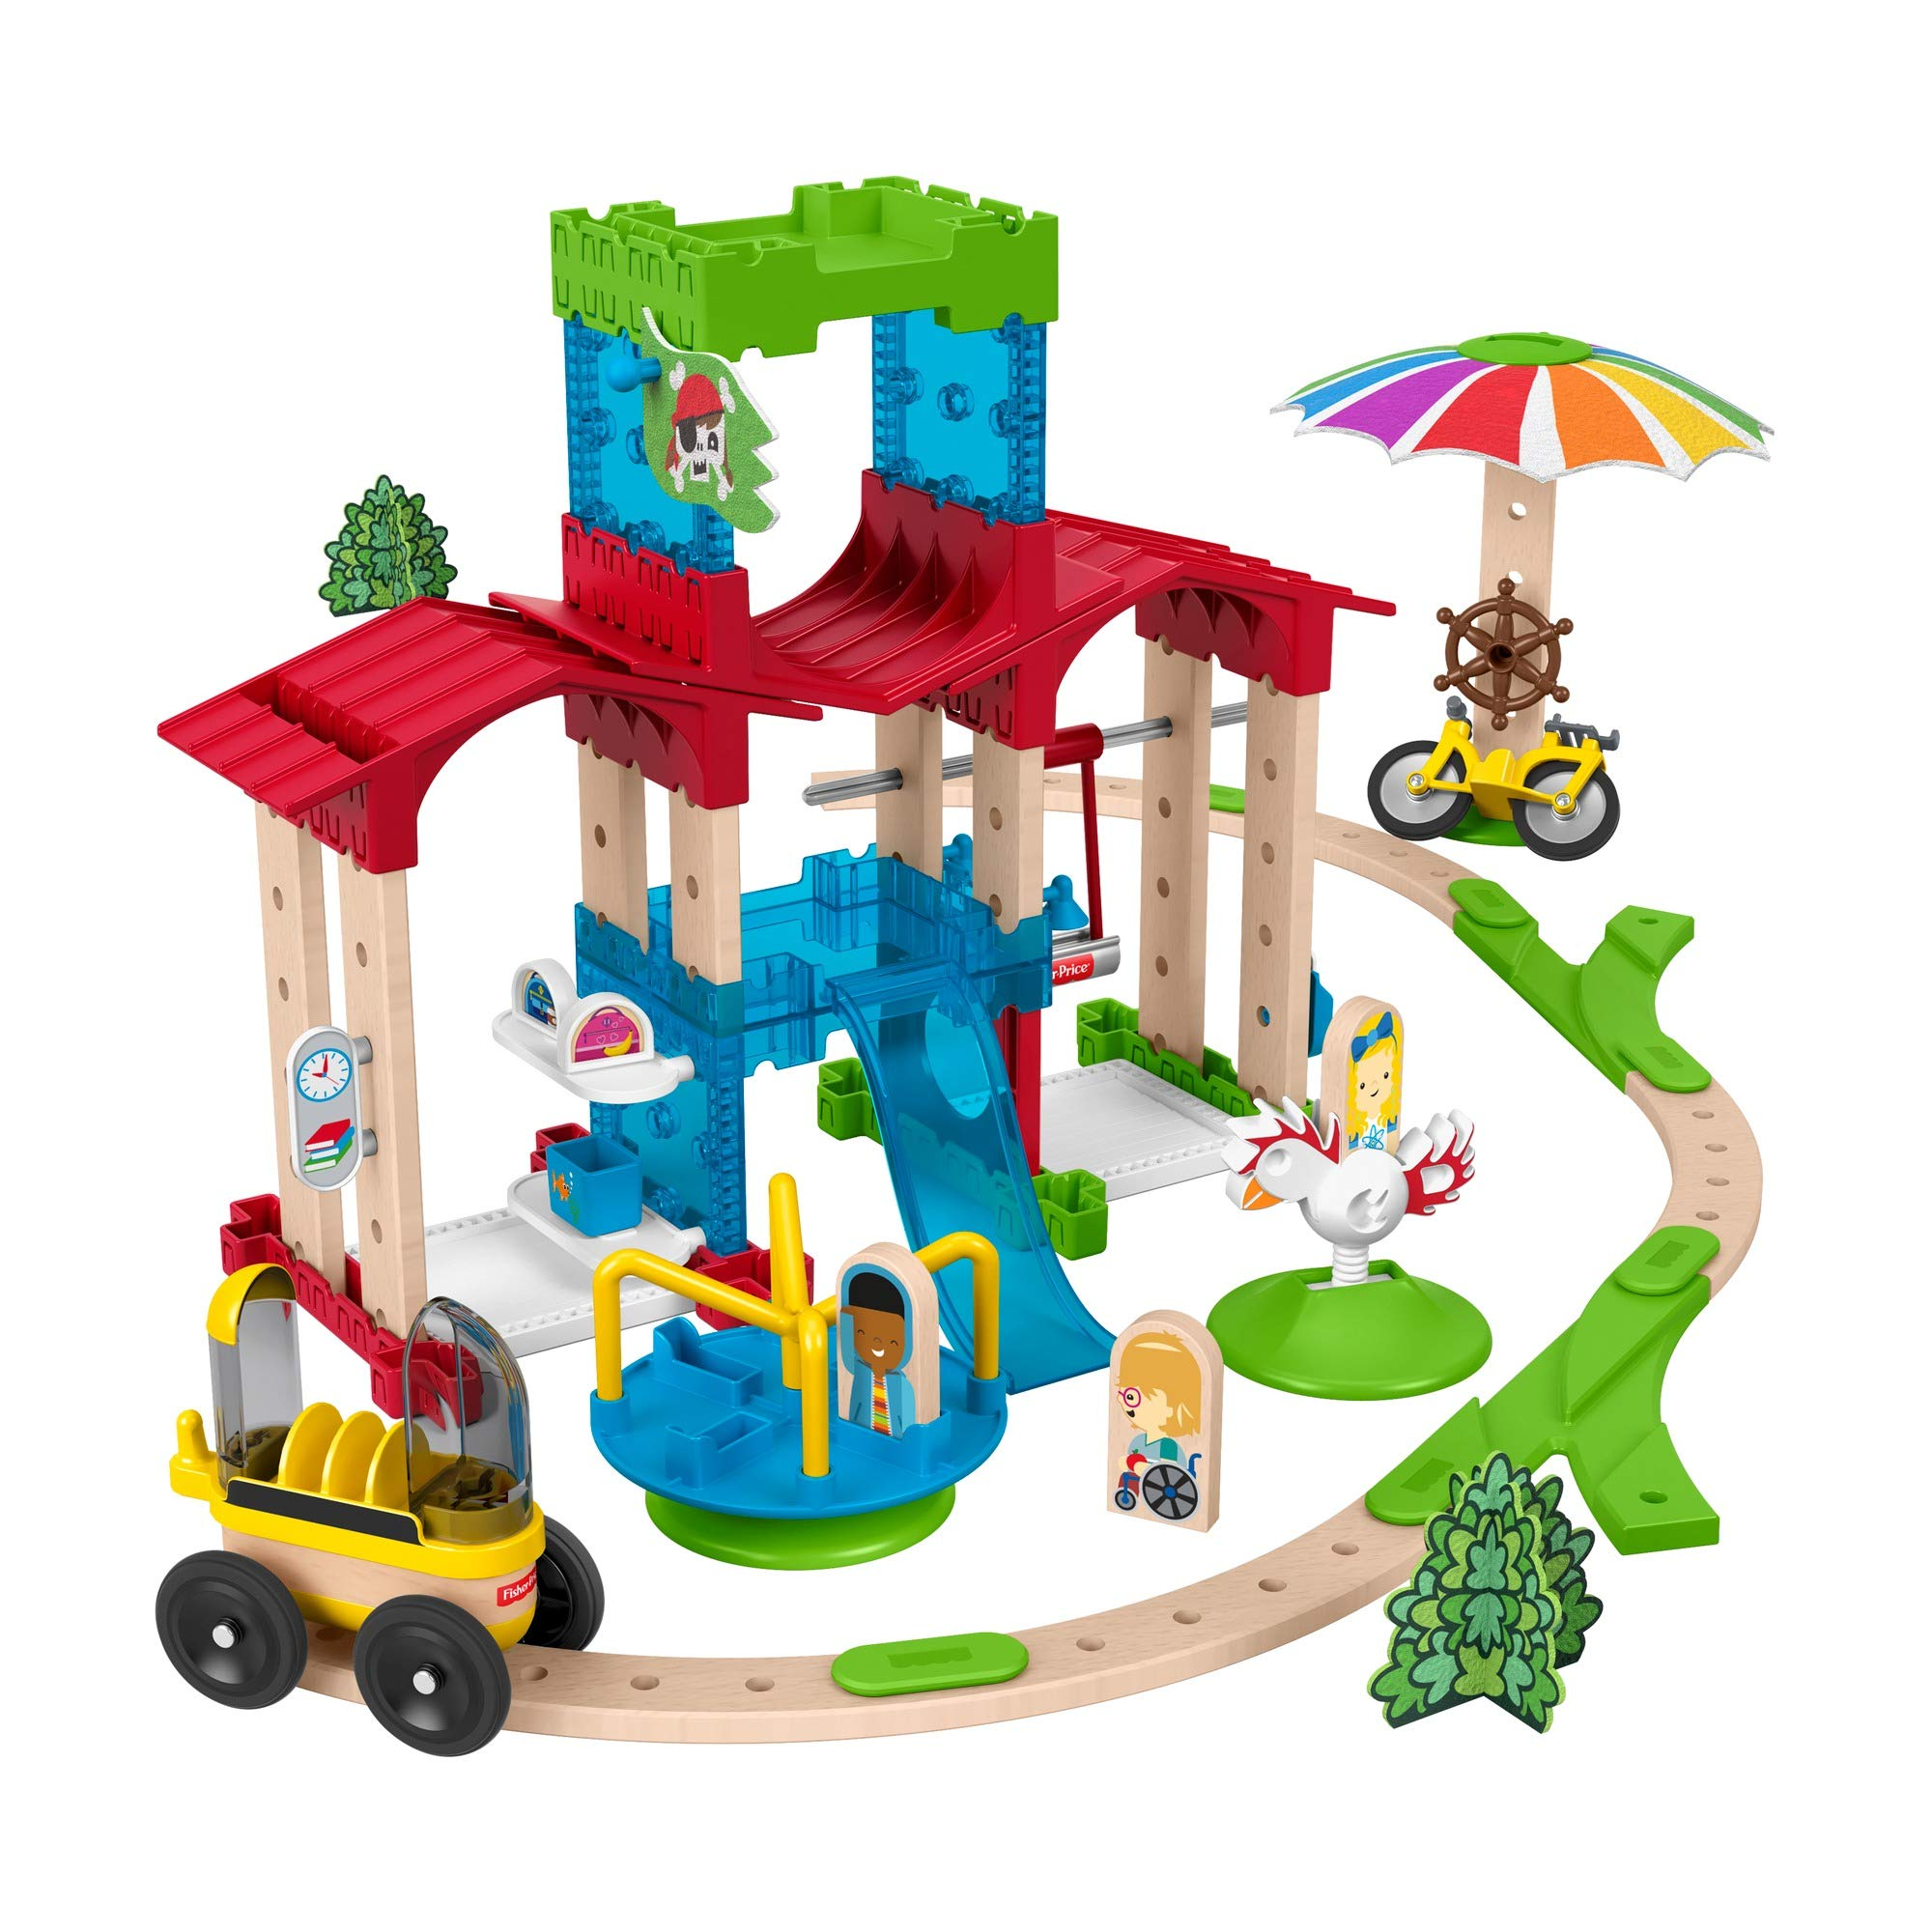 Fisher-Price Wonder Makers Slide & Ride Schoolyard – 75+ Piece Building and Wooden Track Play Set for Ages 3 Years & Up